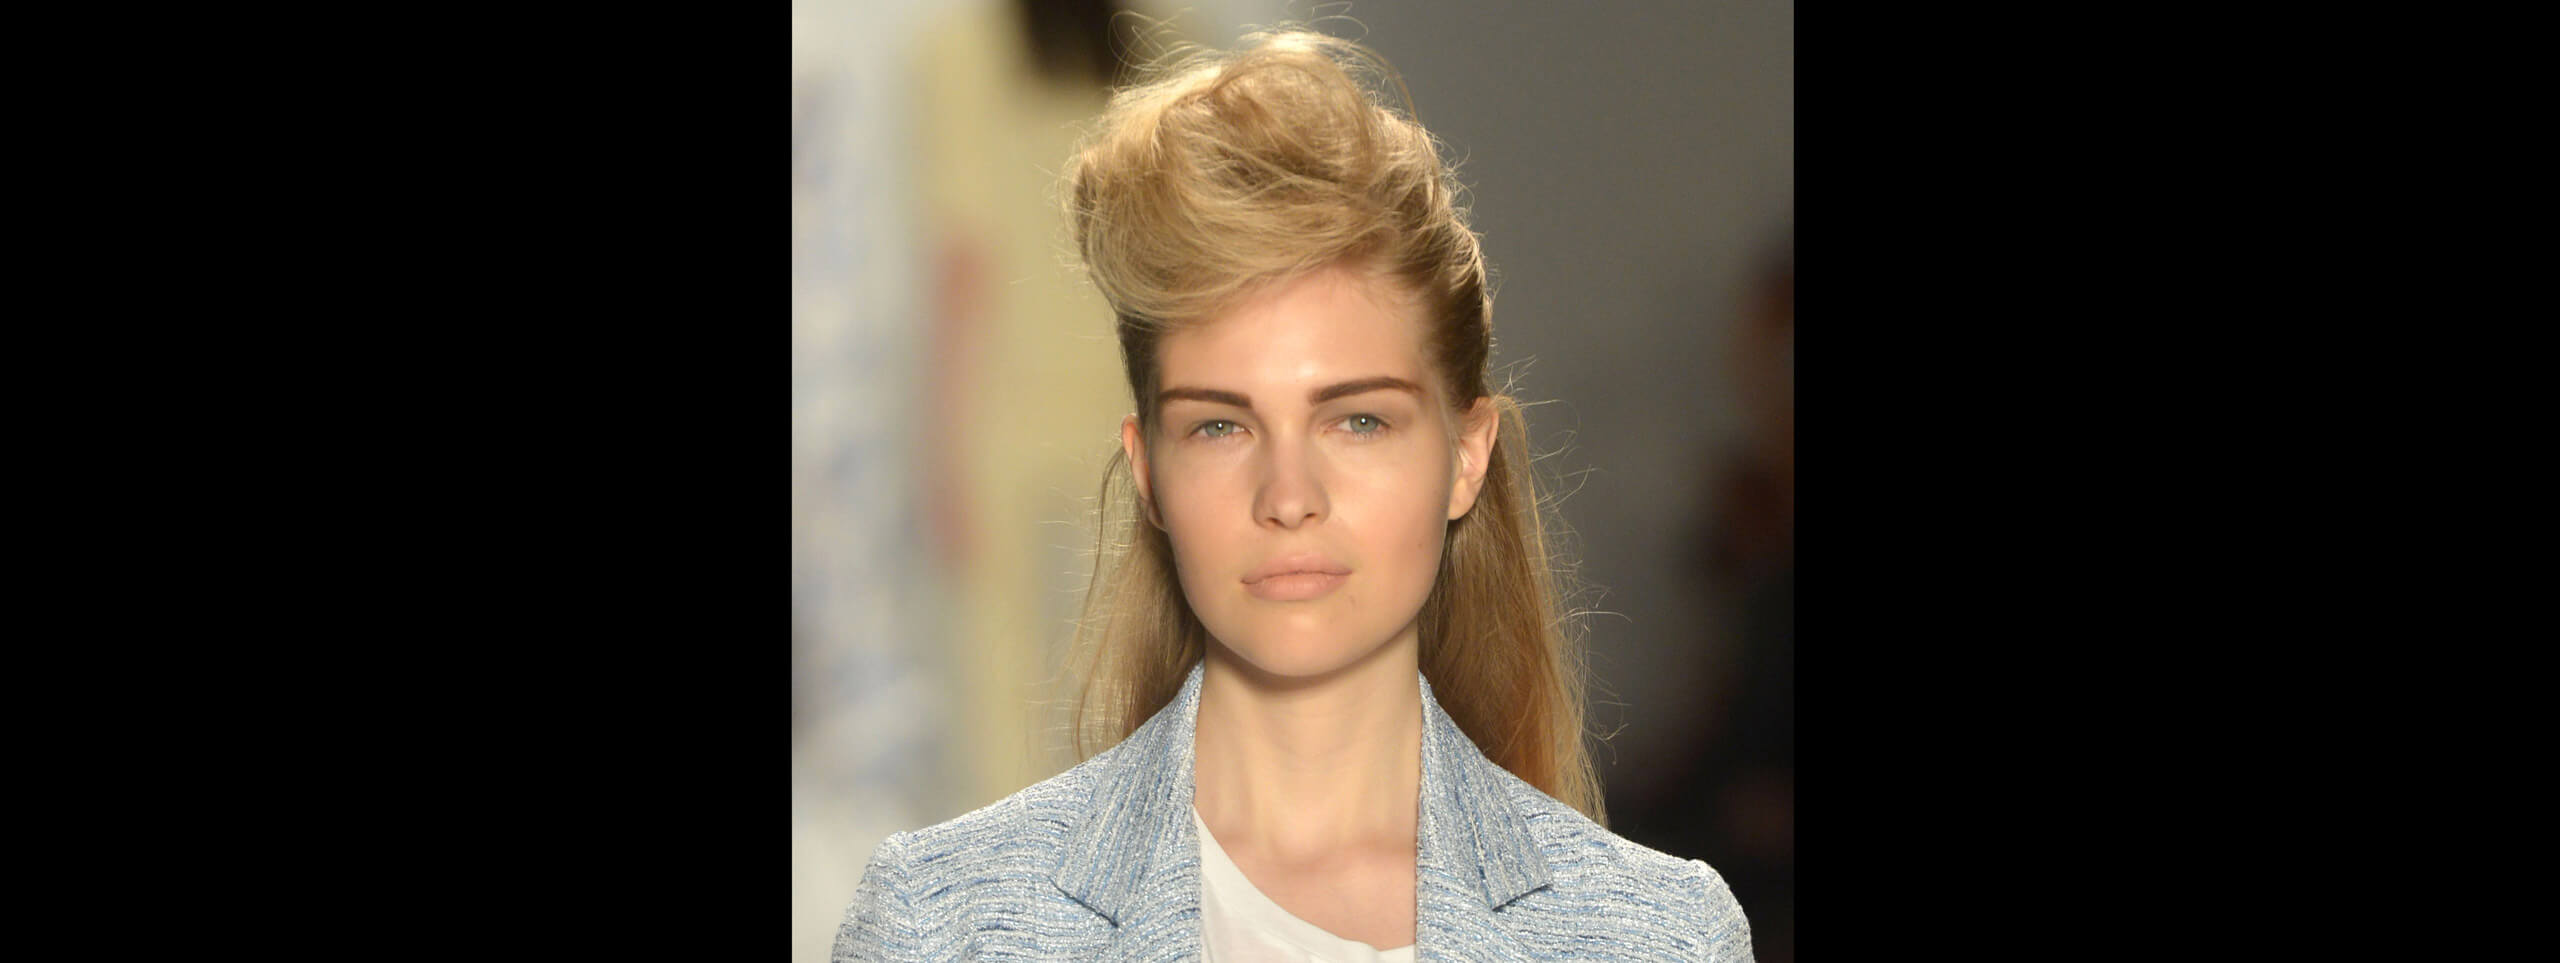 trend-hairstyles-2013